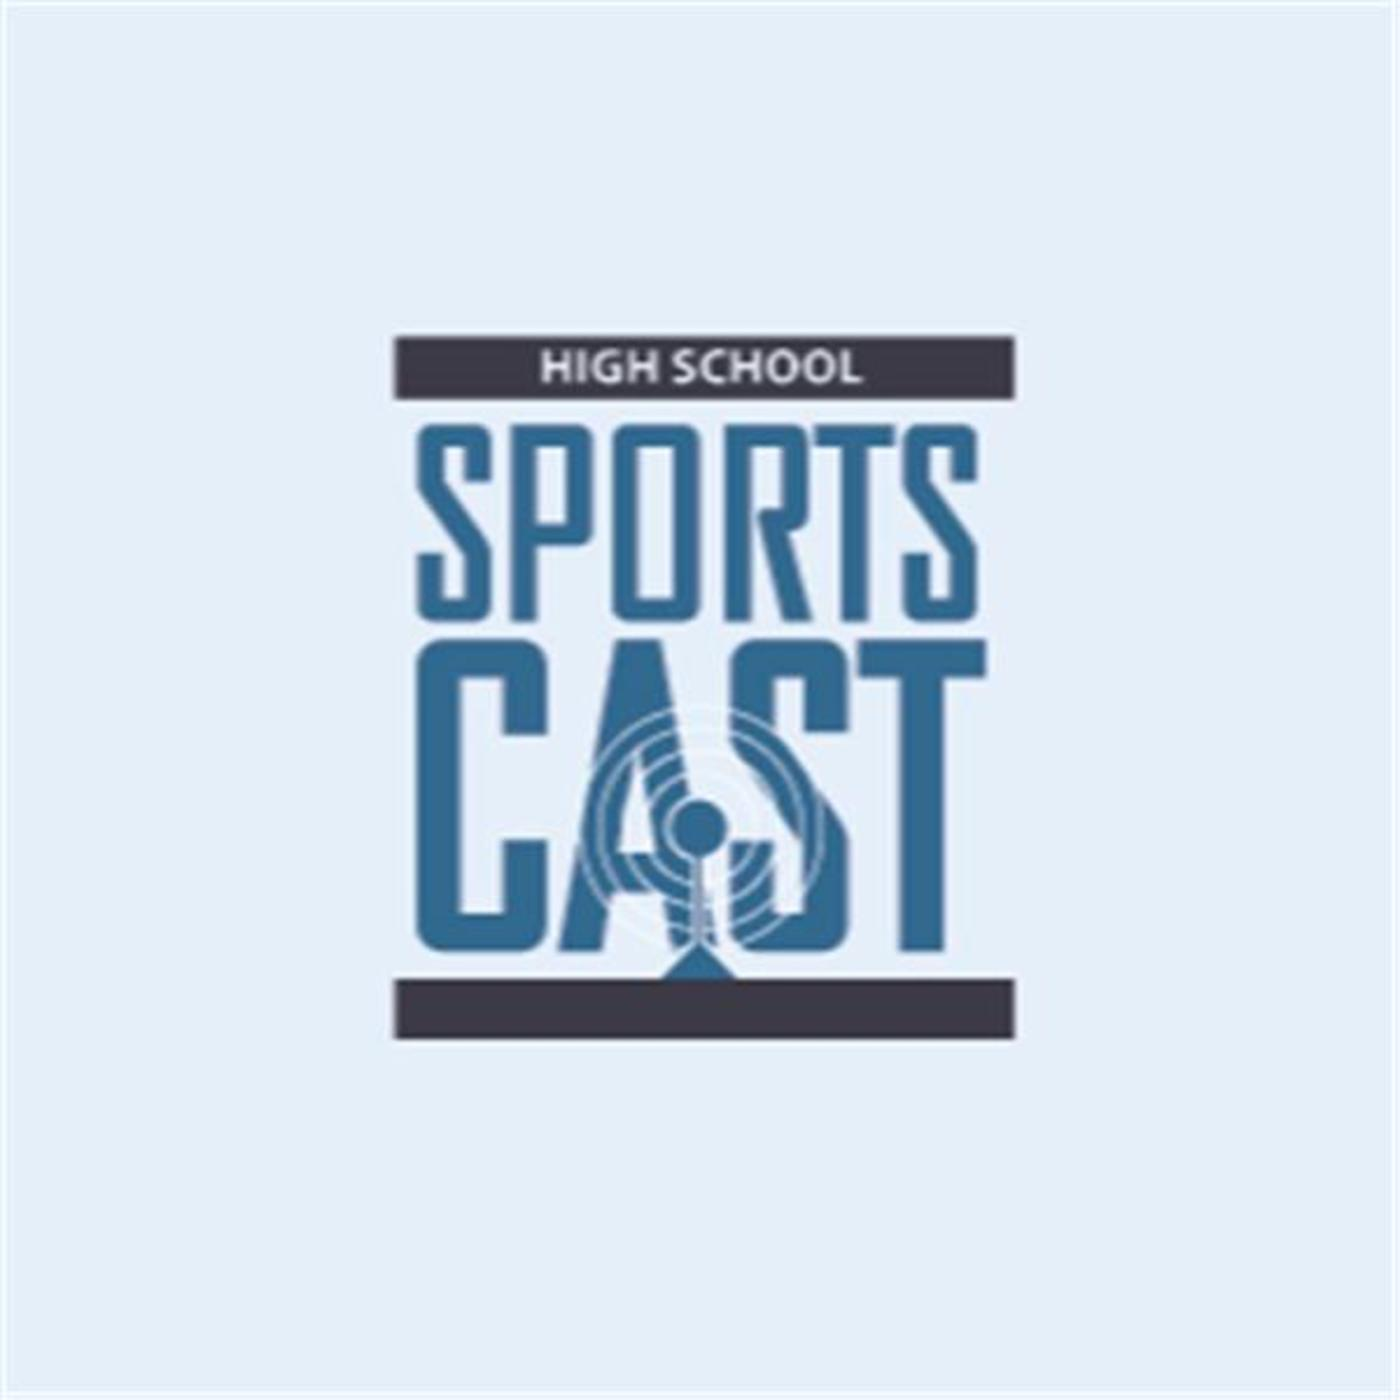 High School Sports Cast